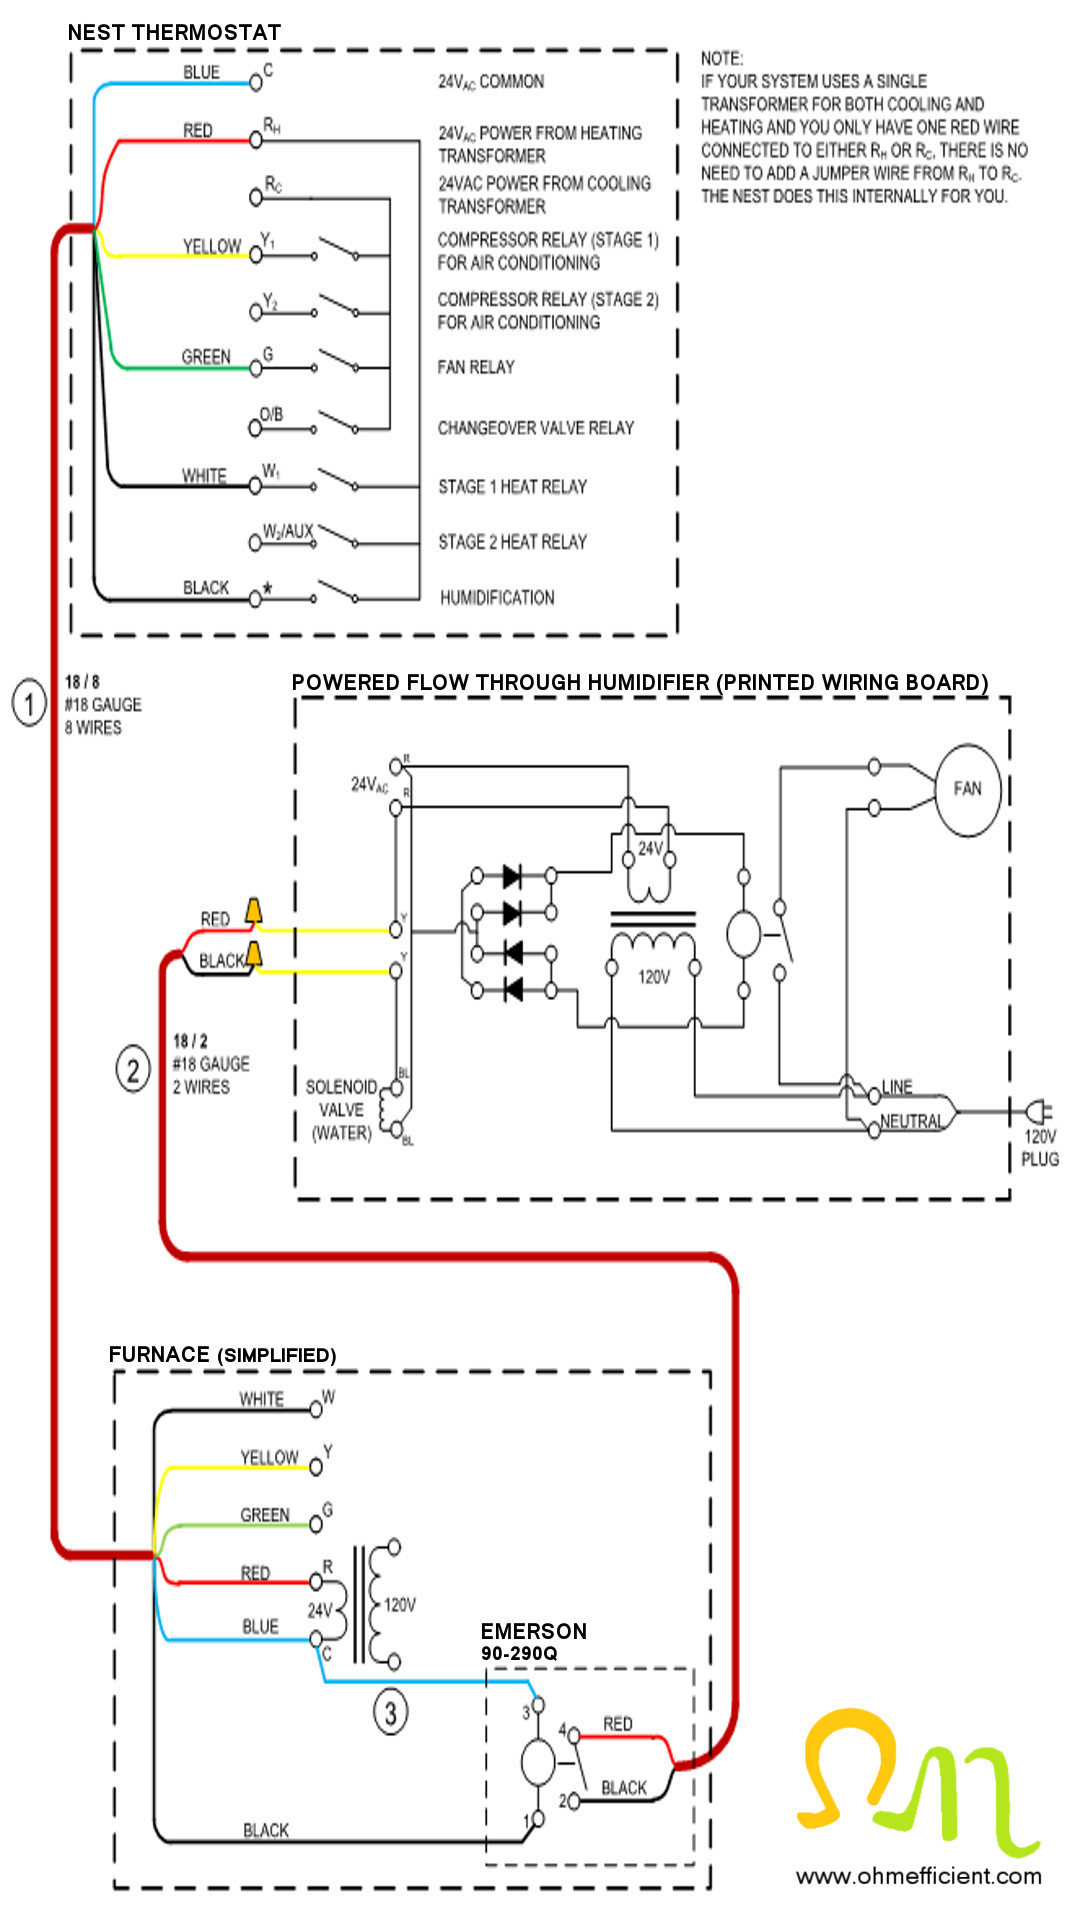 How To Connect & Setup A Nest Thermostat To Function As A Humidistat - Nest Controller Wiring Diagram